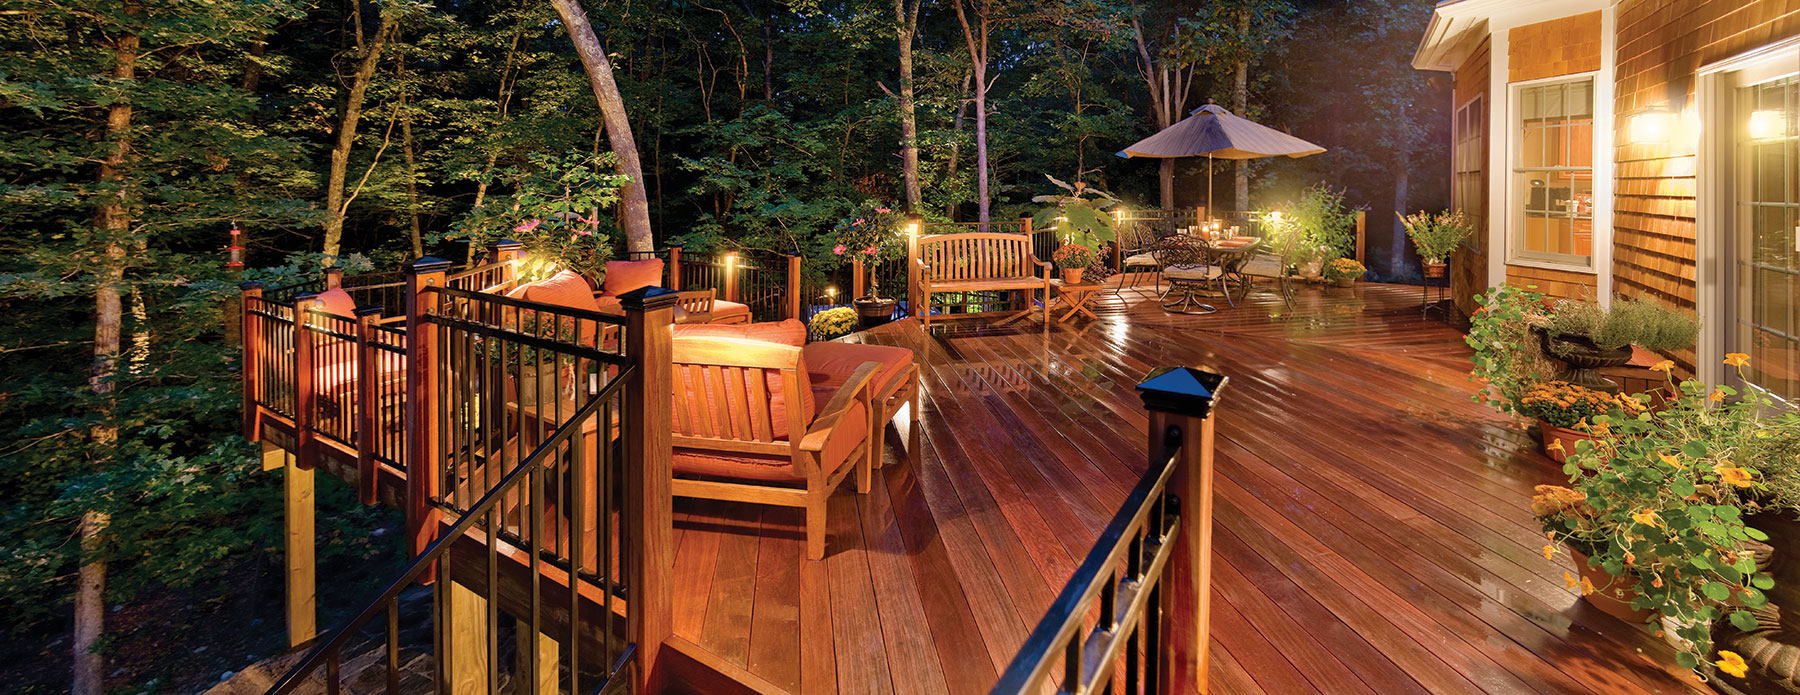 Louisville Deck Lighting